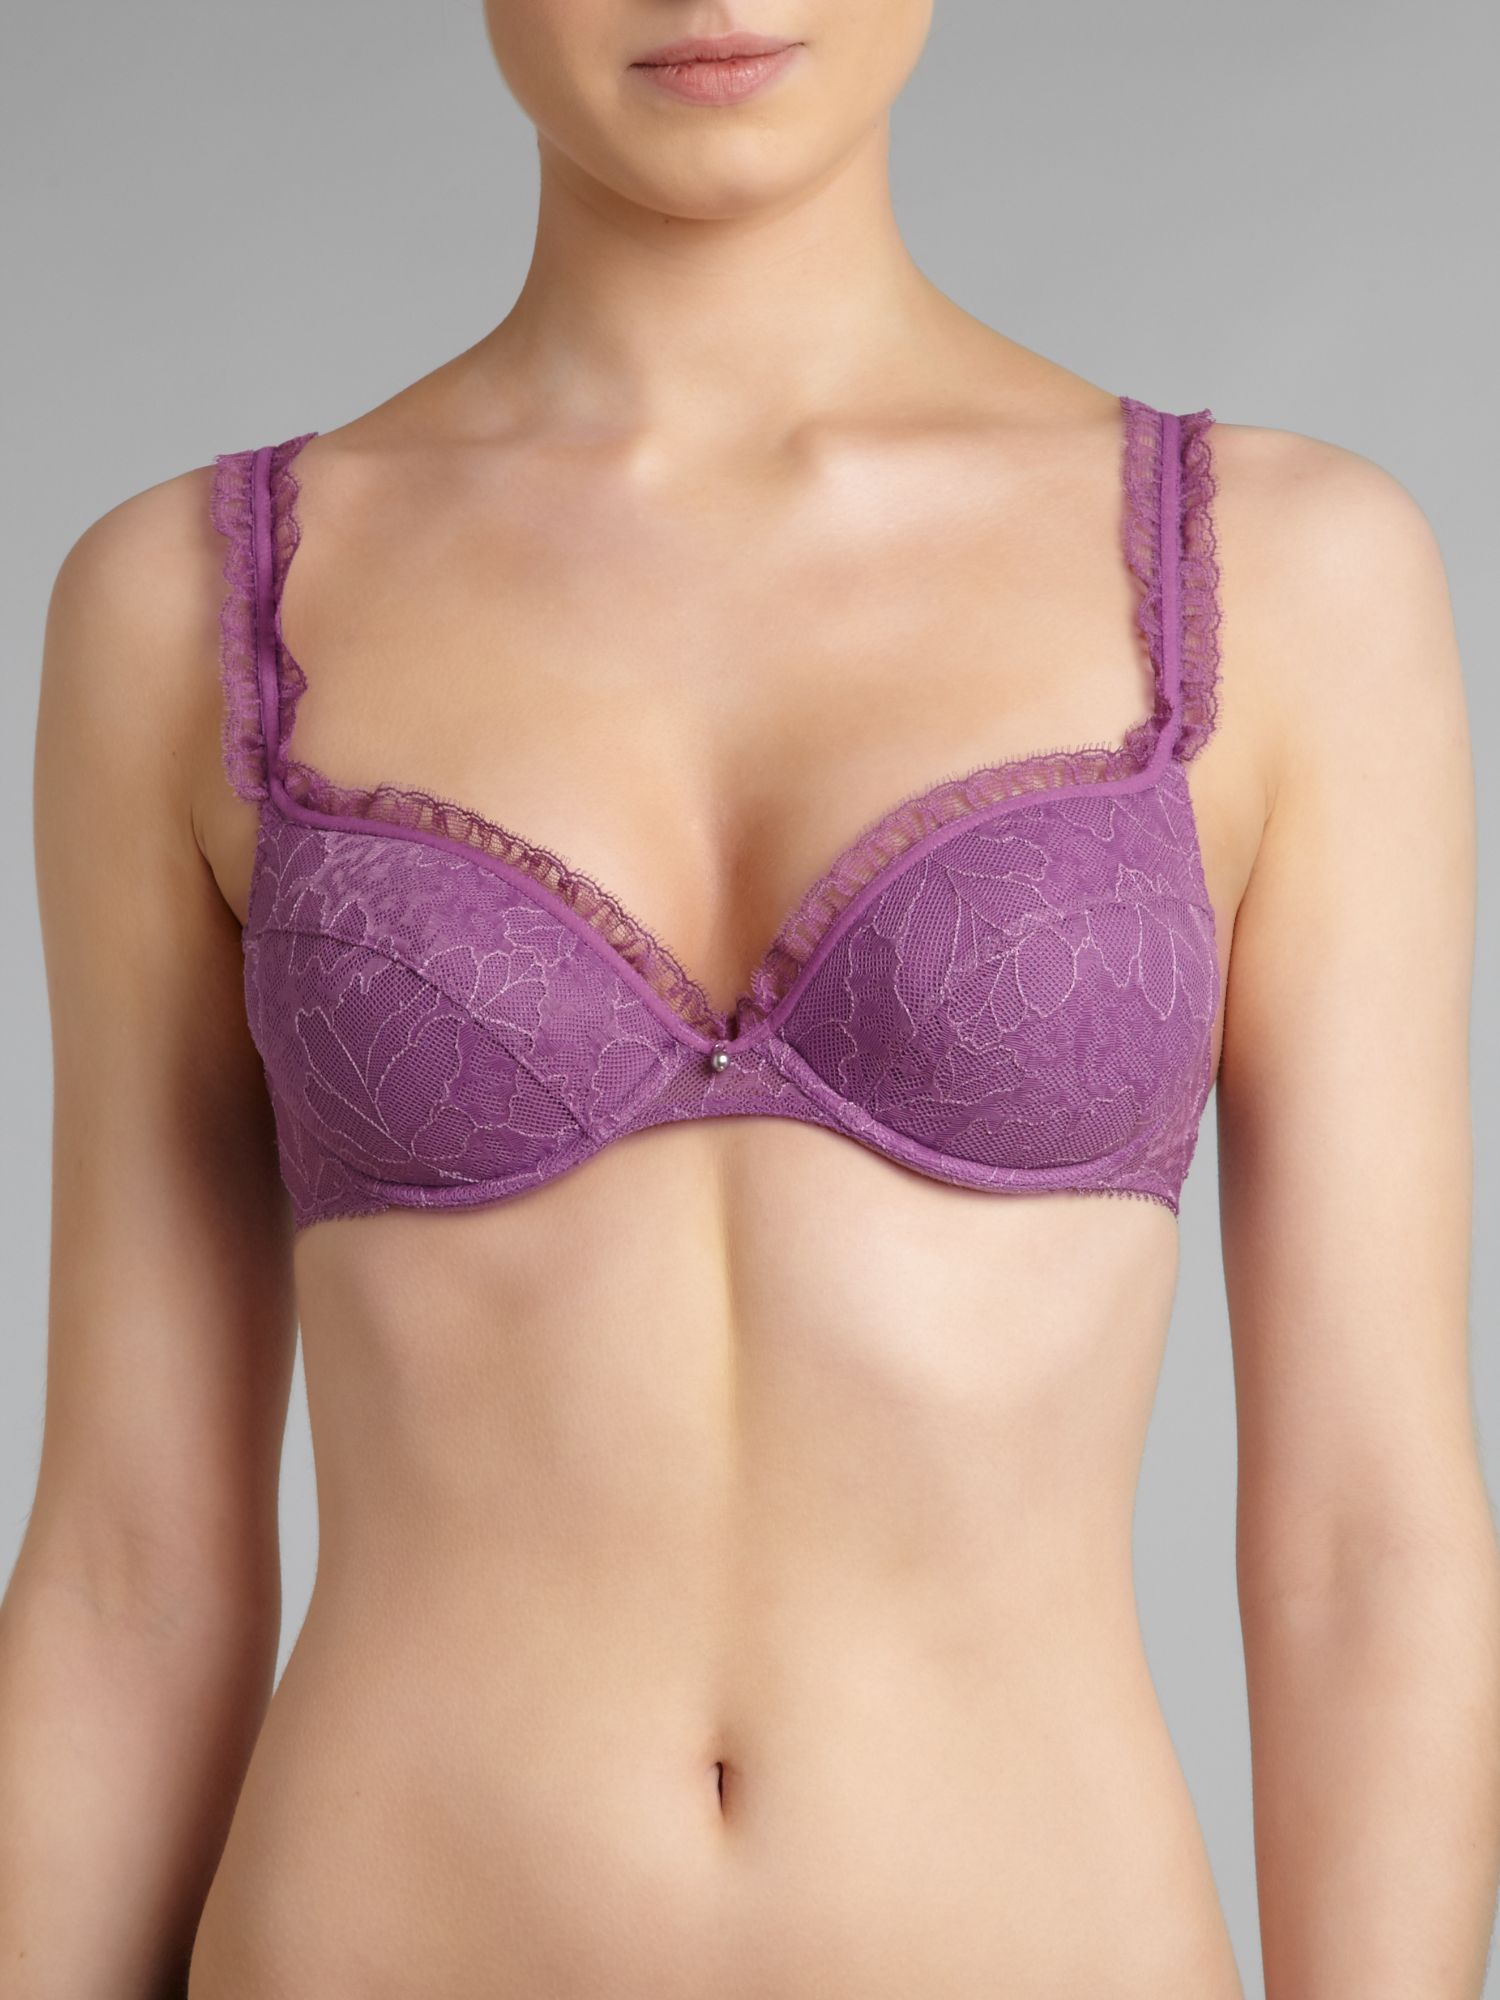 Dentelle de fee ranfe in purple